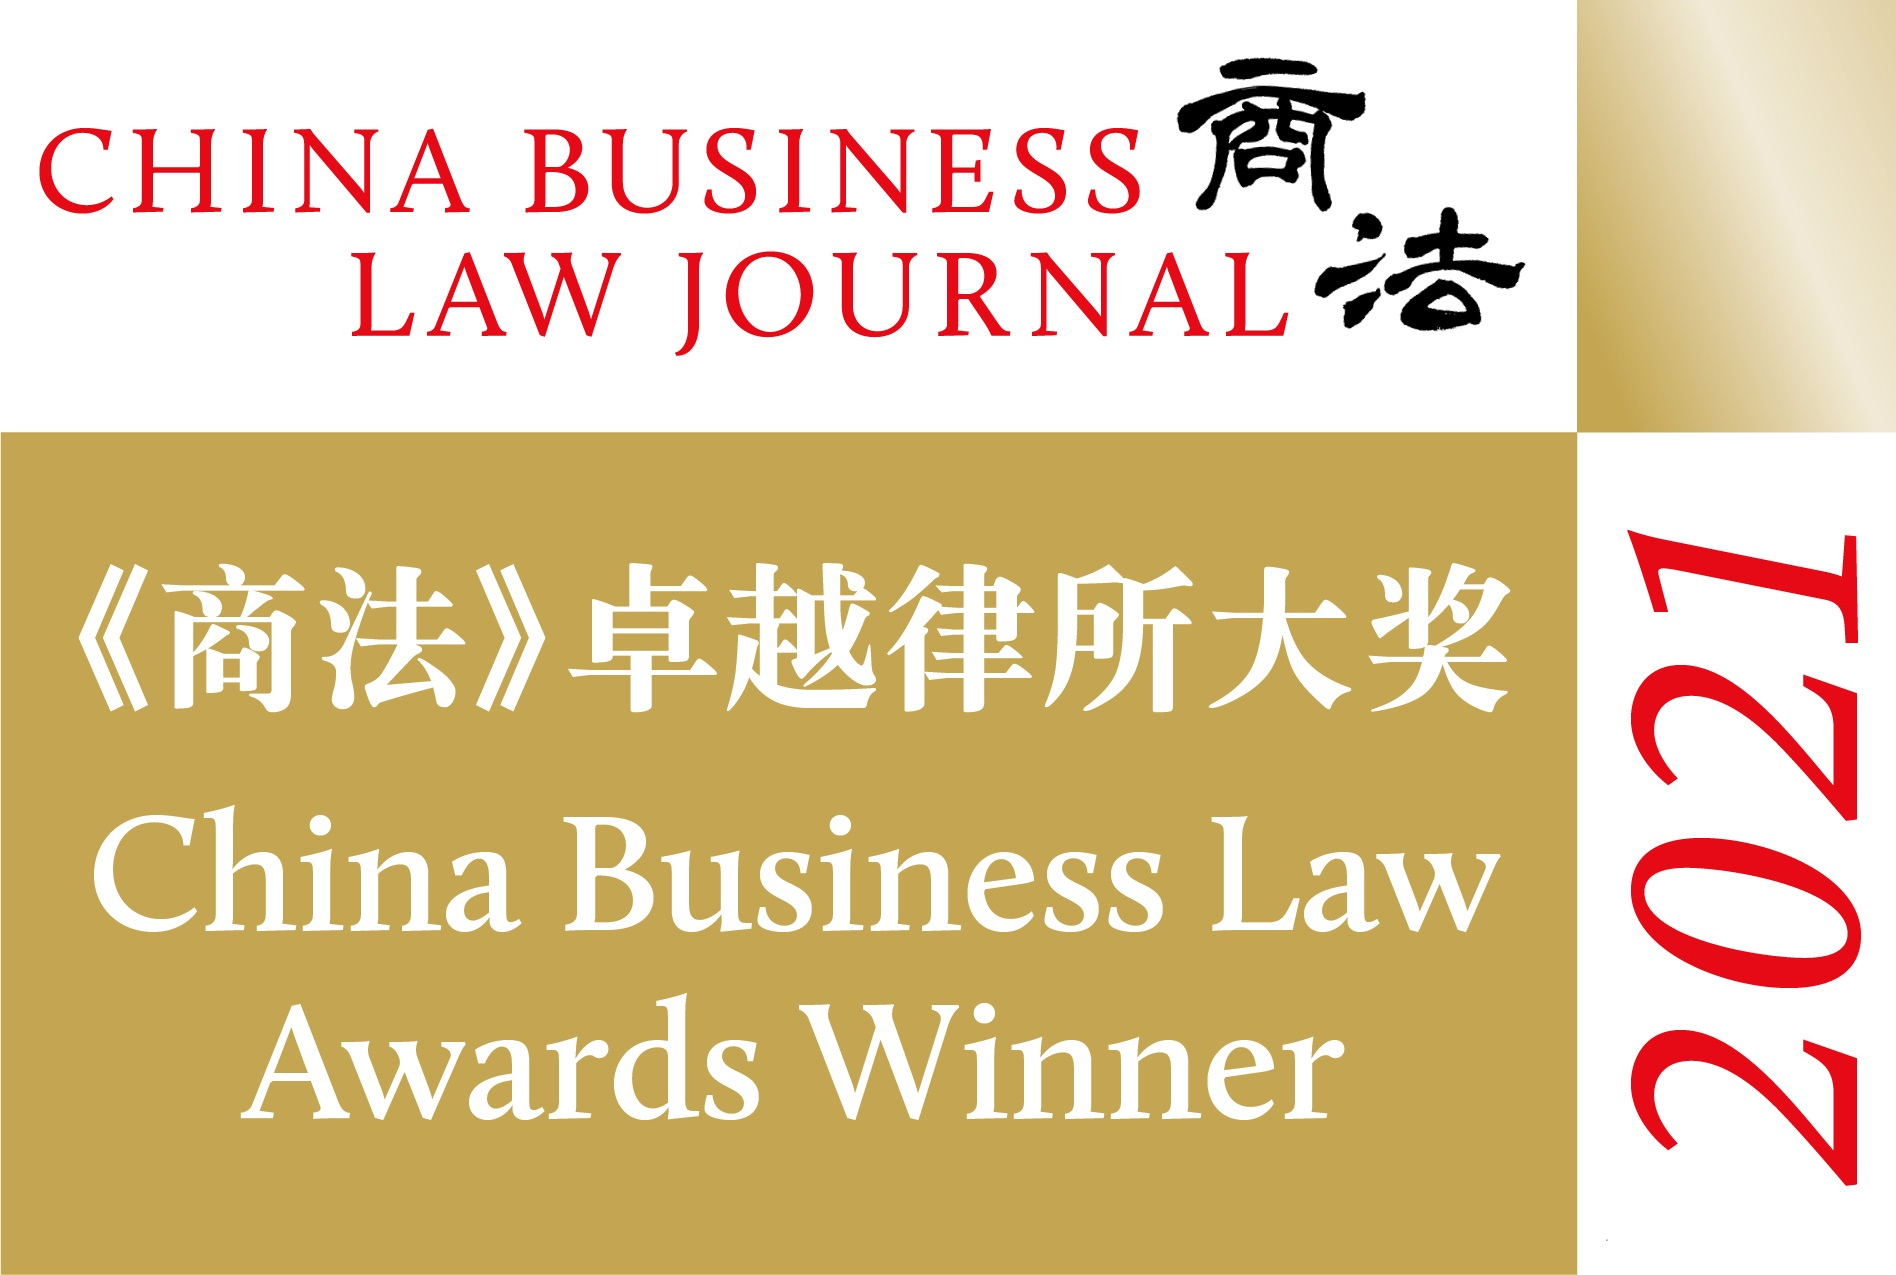 China Business Law Firm in Pro-bono, Technology & telecom by China Business Law Journal, 2021